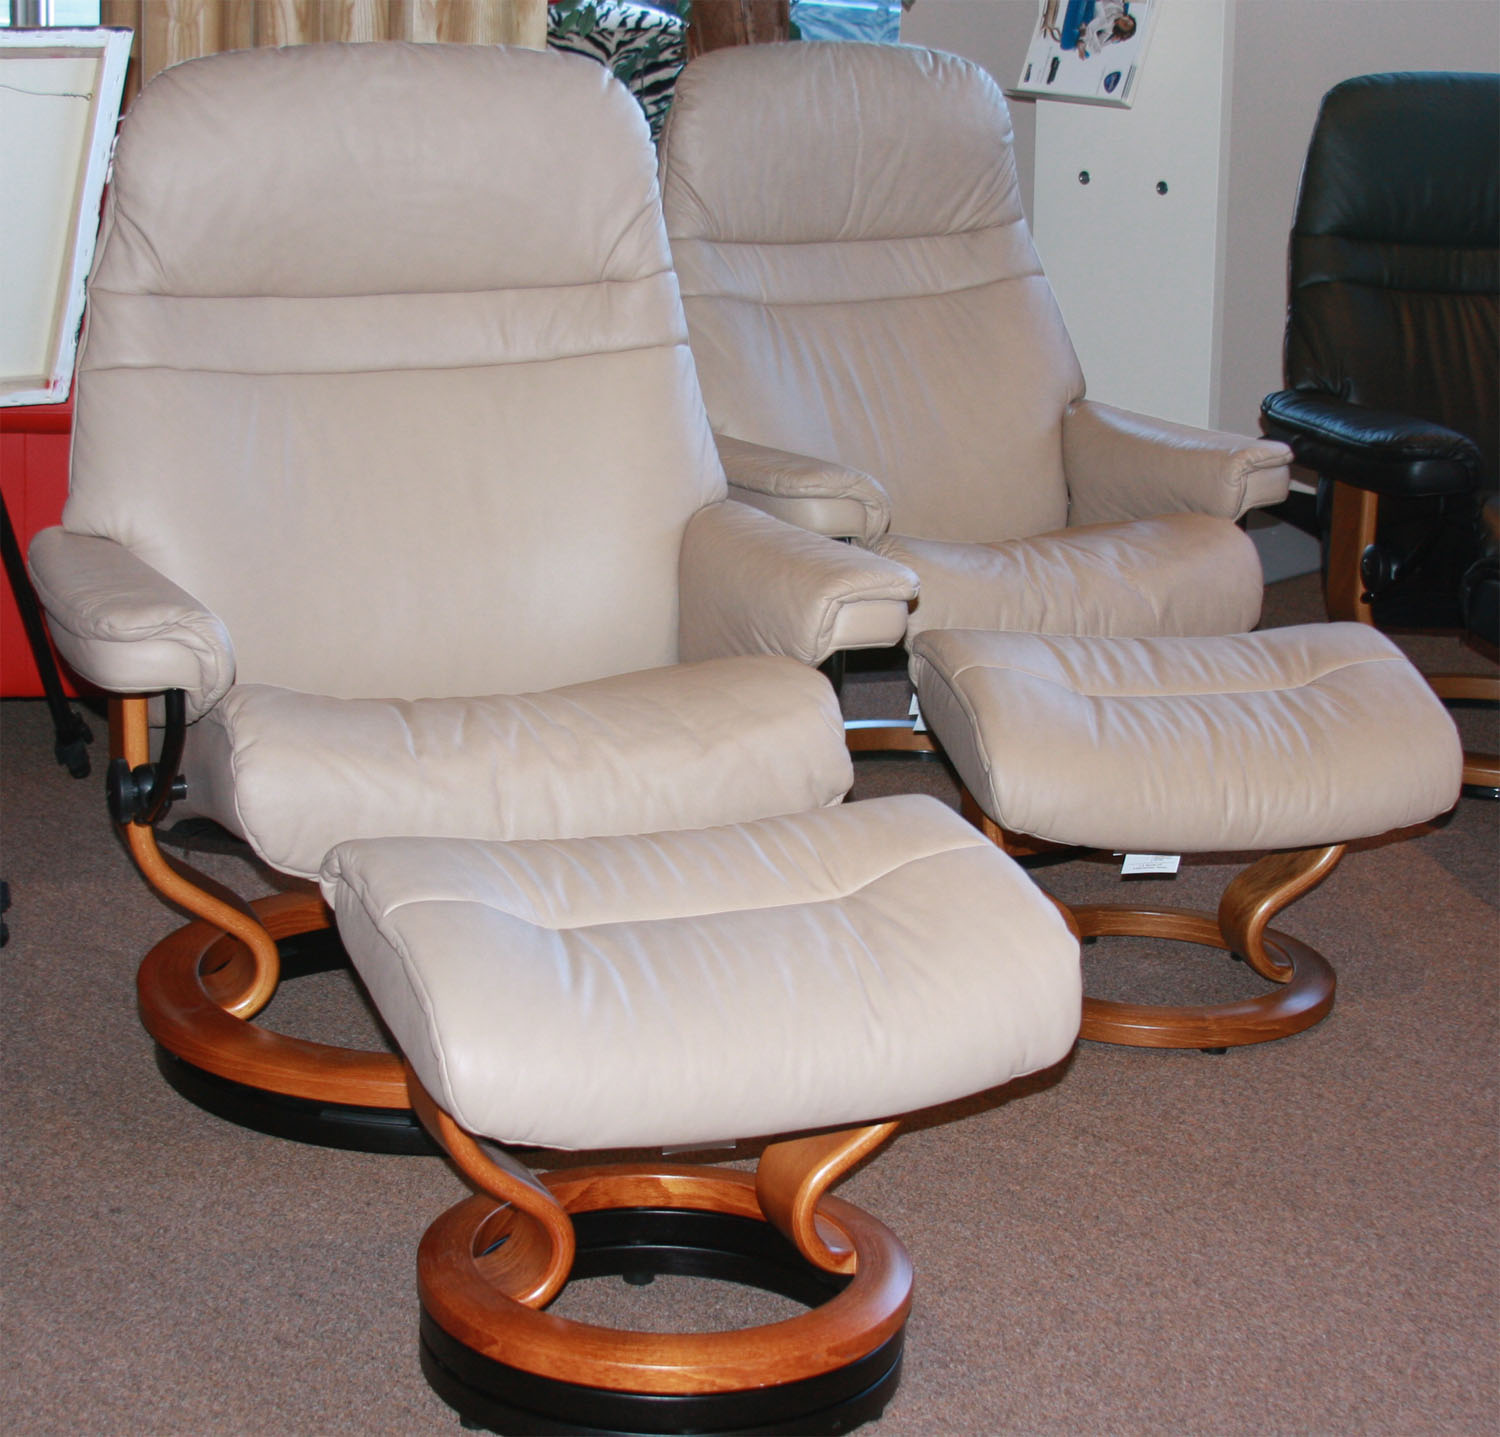 stressless sunrise recliners chairs by ekornes recliner lounger